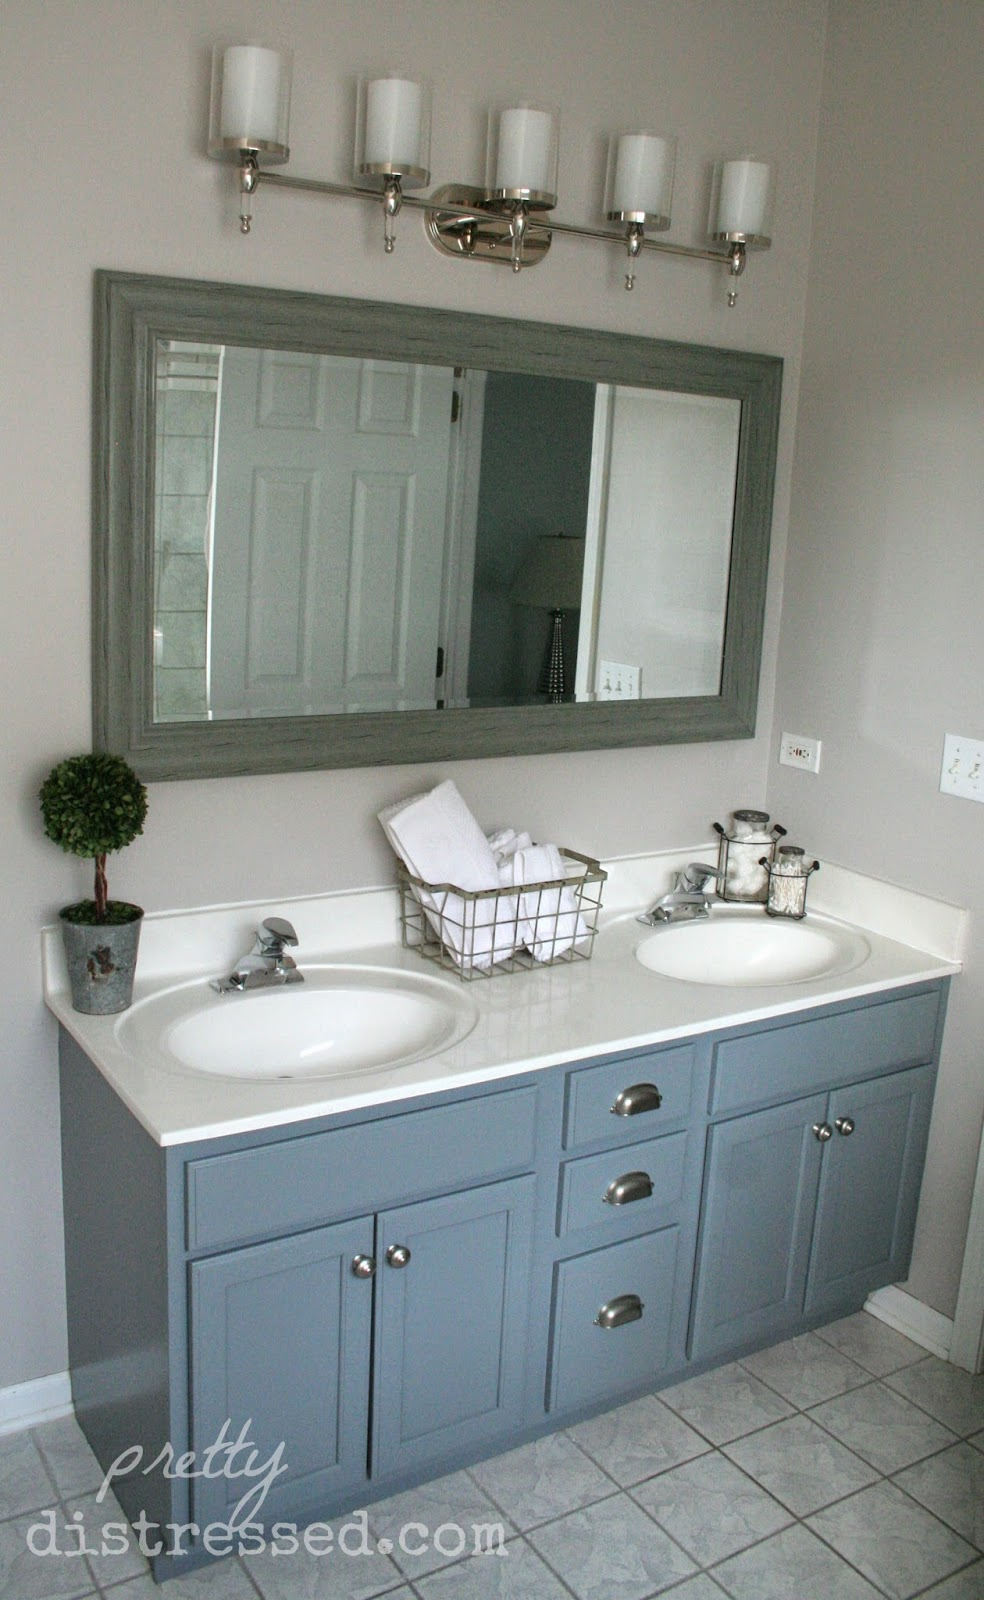 Updating Bathroom Vanity Lights pretty distressed: bathroom vanity makeover with latex paint